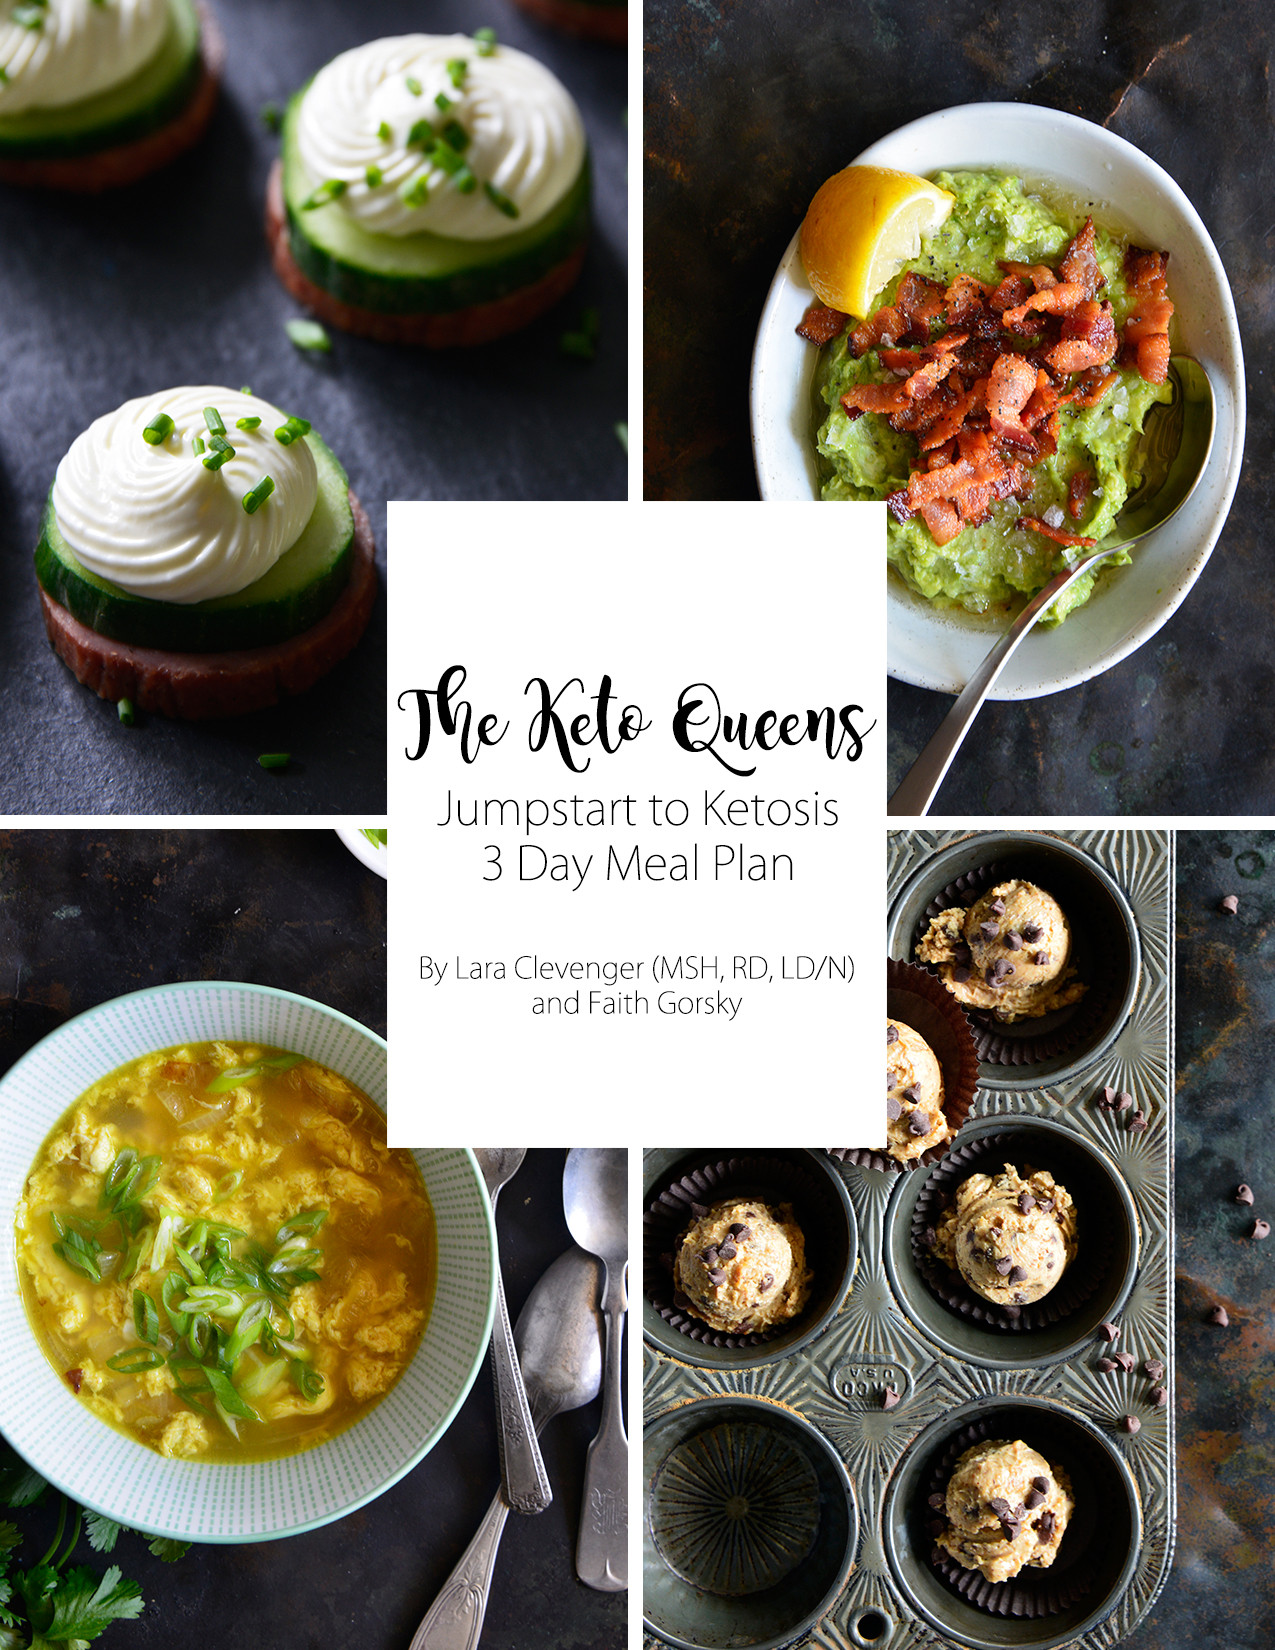 3 Day Ketosis Diet  Jumpstart to Ketosis 3 Day Meal Plan The Keto Queens